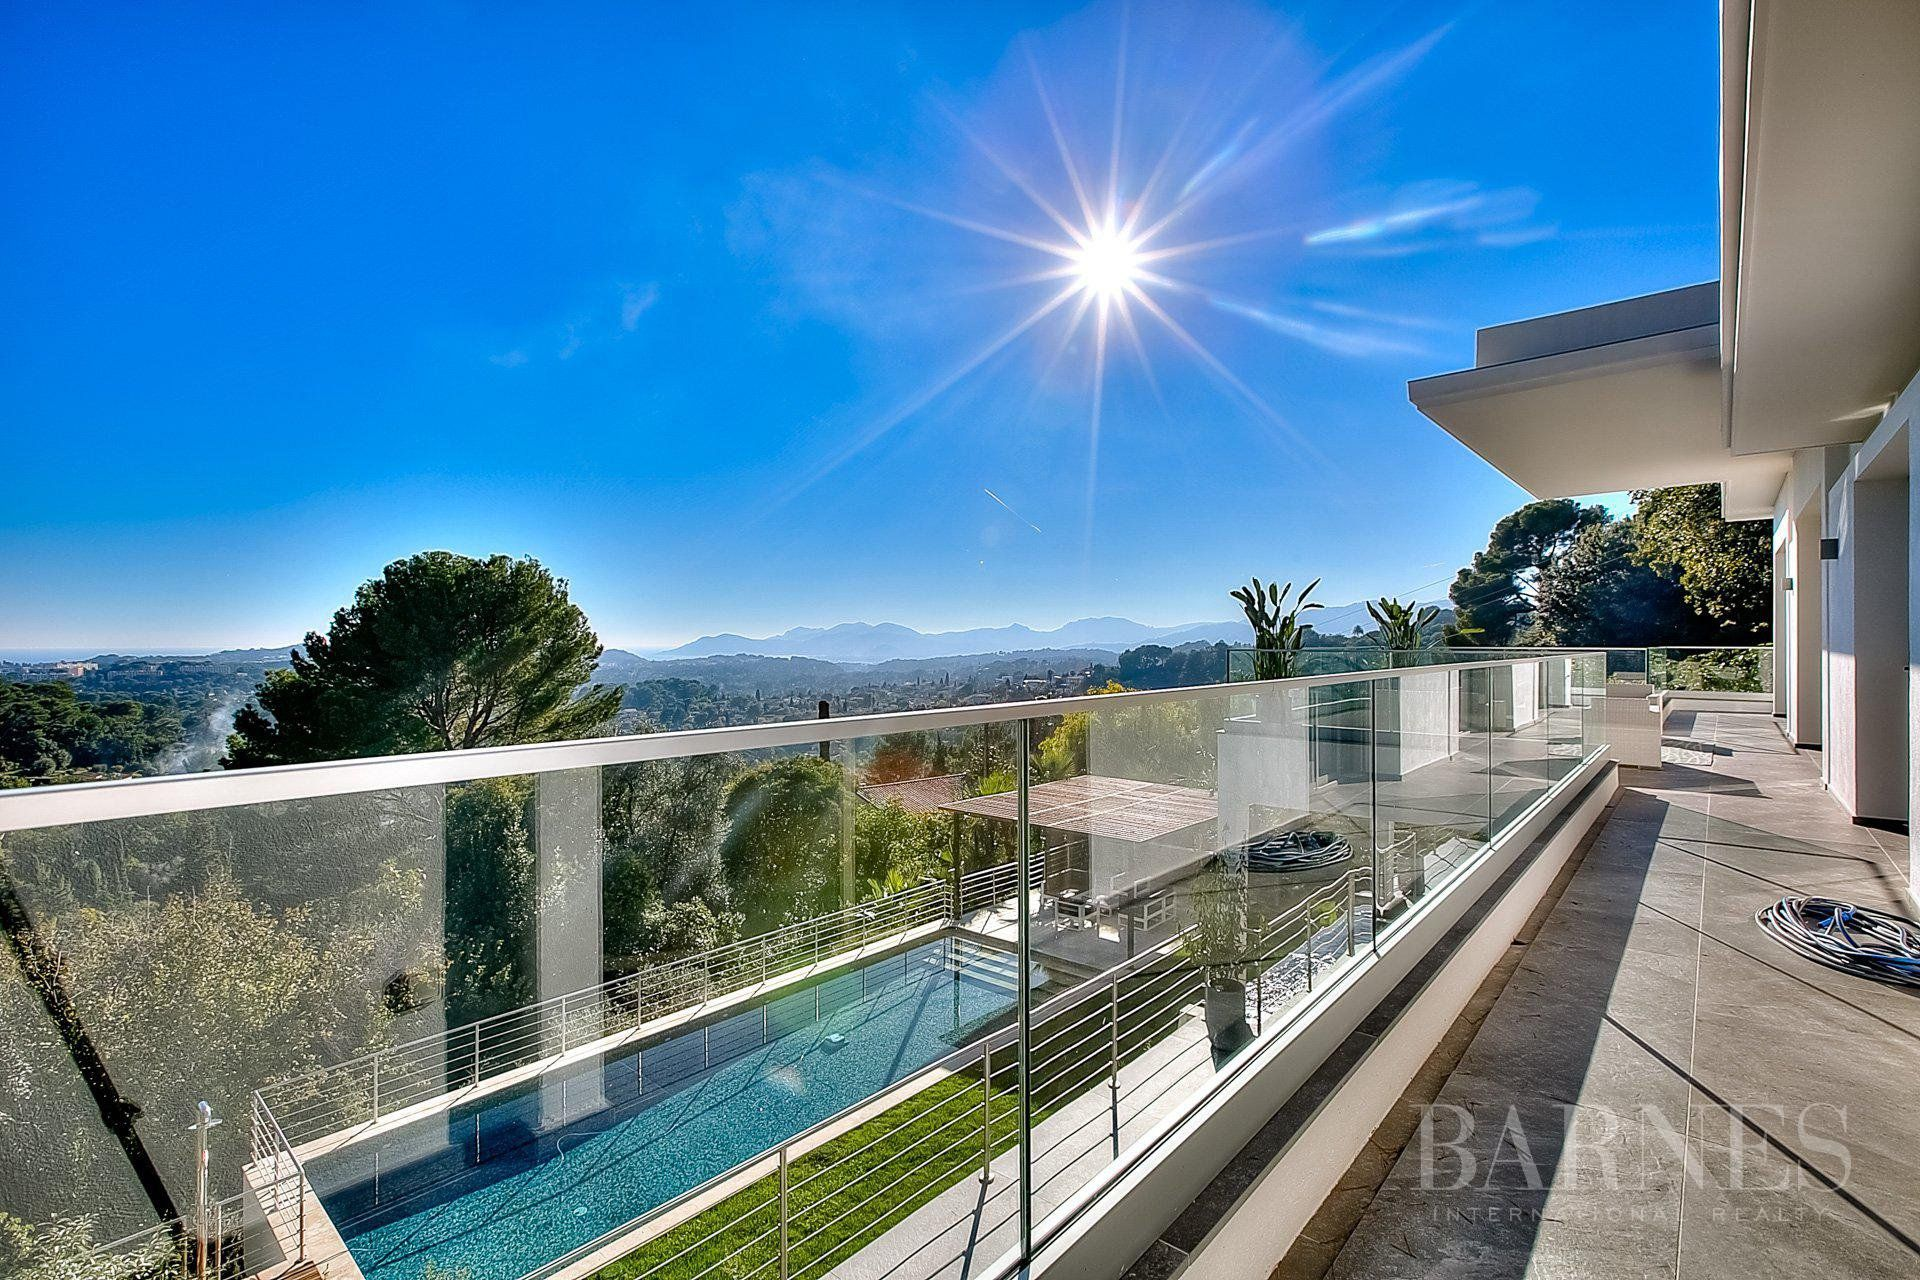 MOUGINS - CONTEMPORARY VILLA - 5 BEDROOMS - SWIMMING POOL - PANORAMIC SEA AND MOUNTAIN VIEW